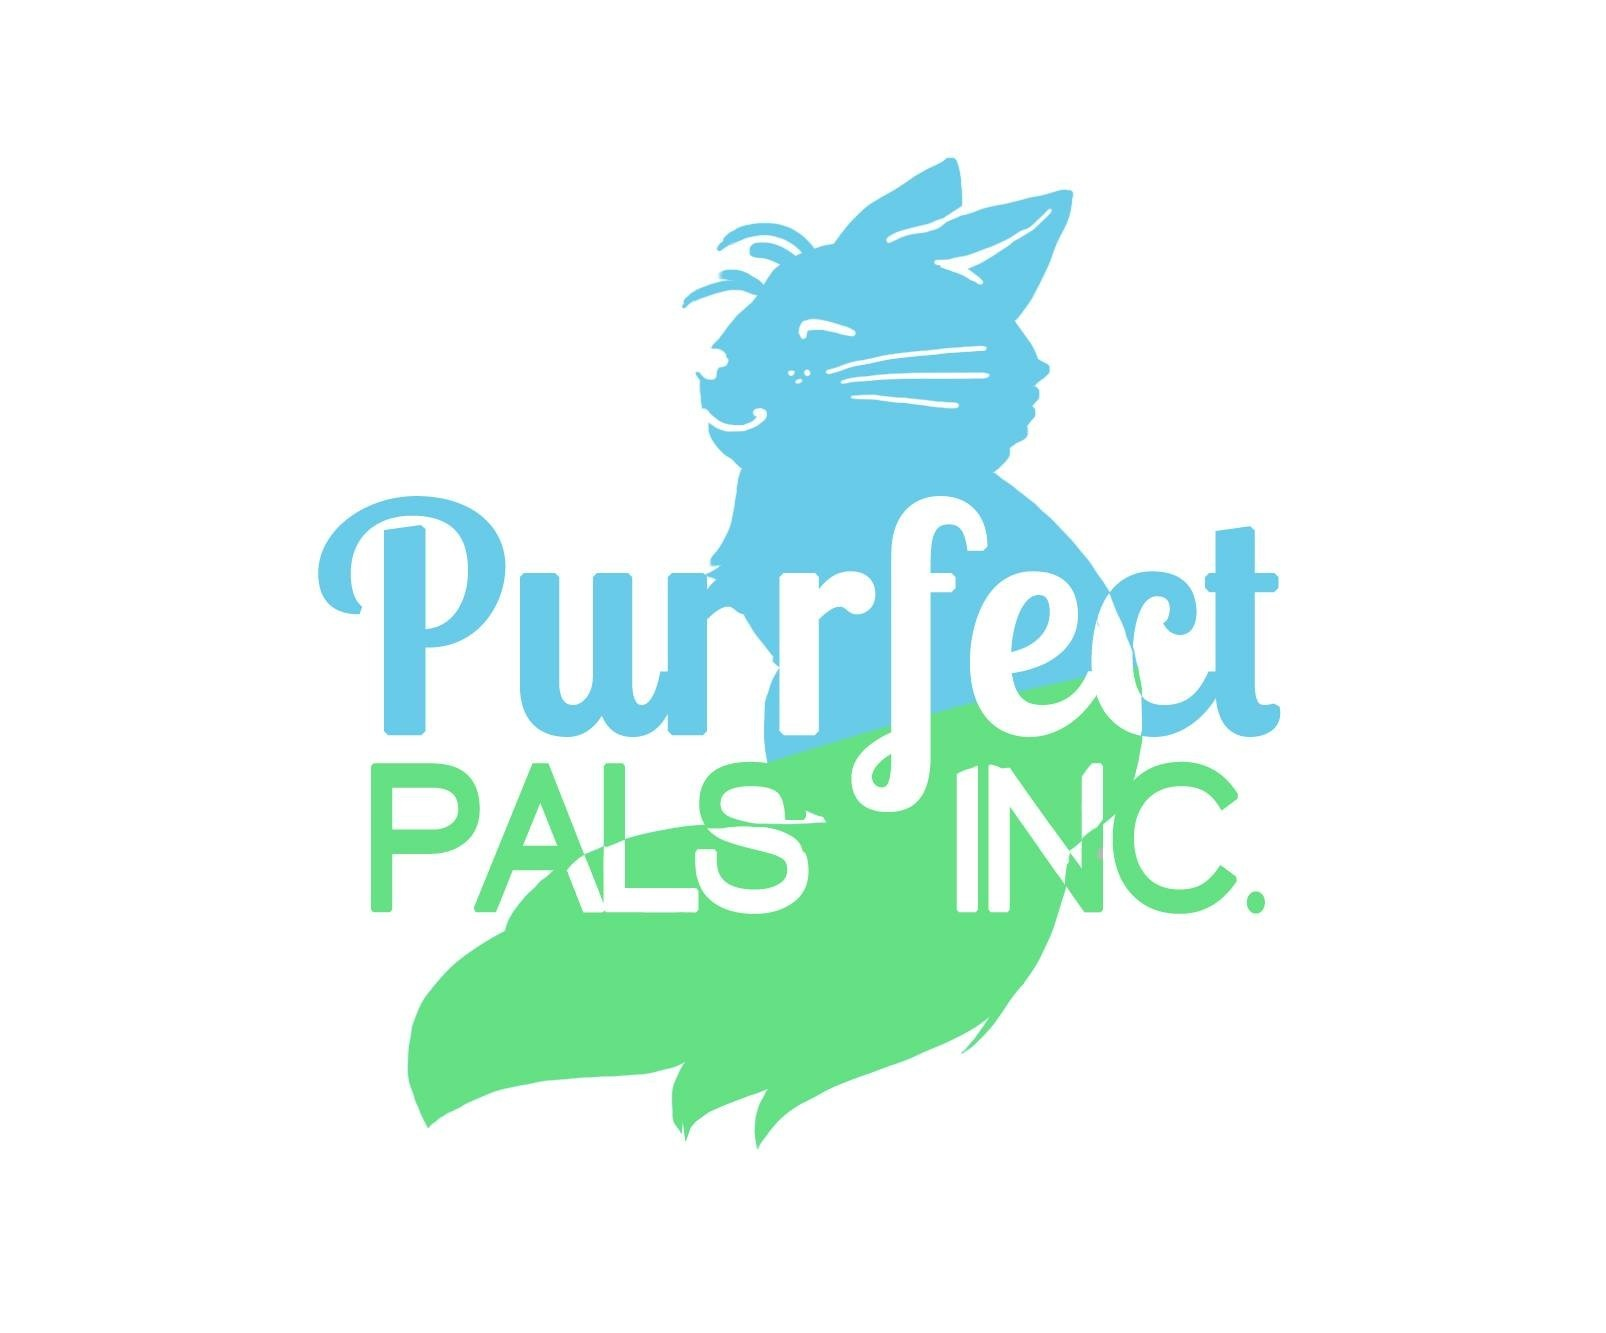 Purrfect Pals, Inc.